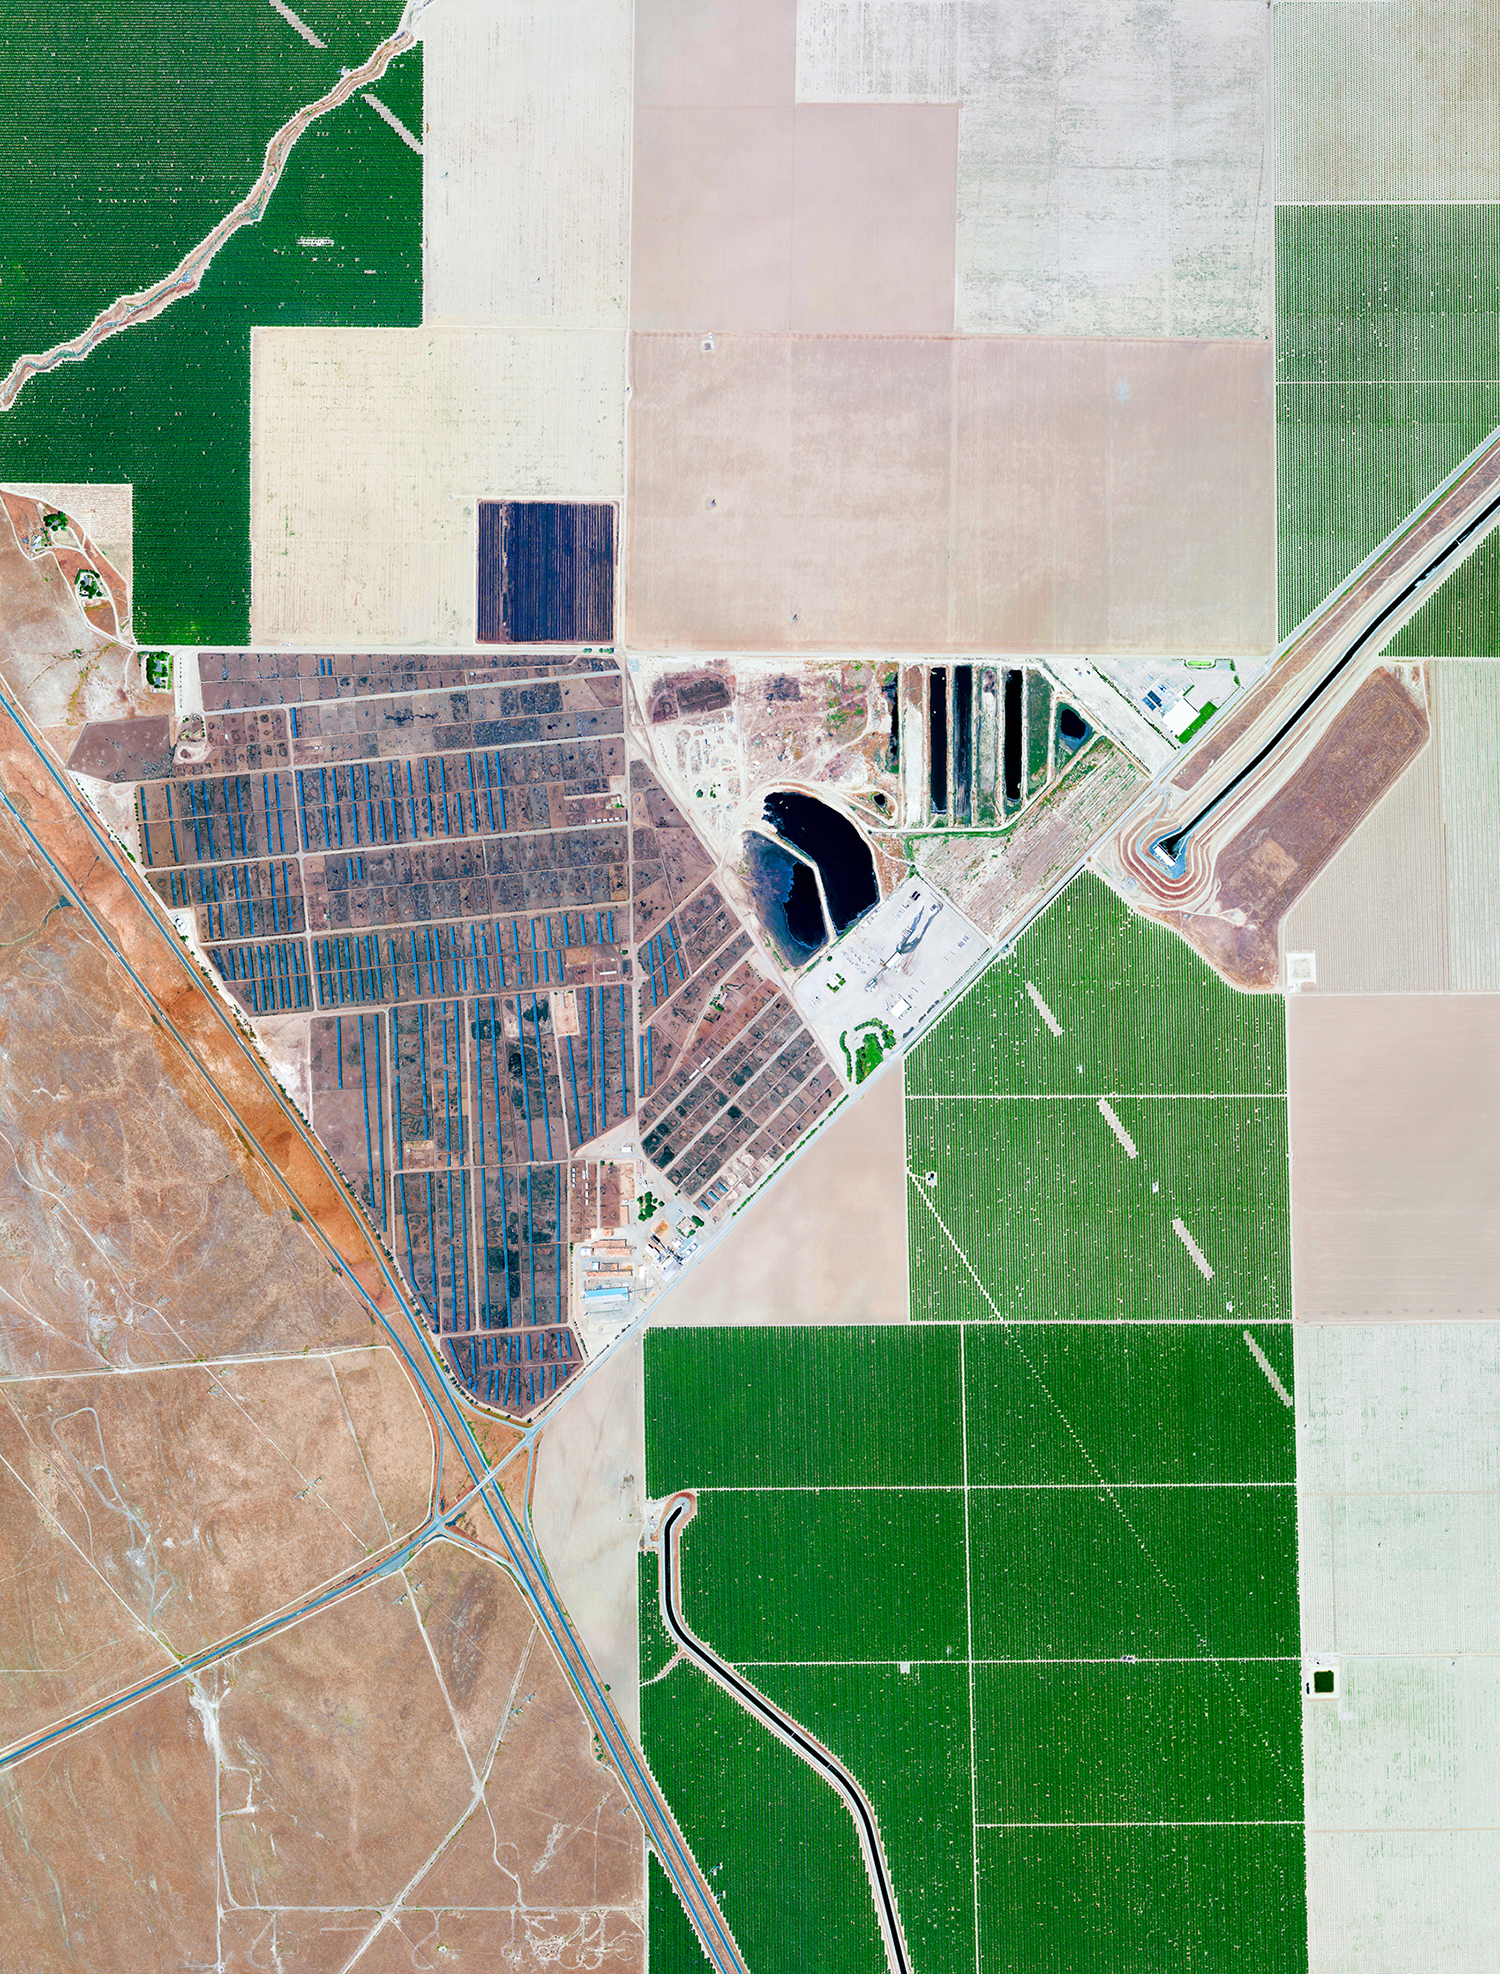 5/29/2017  Harris Cattle Ranch  San Joaquin Valley in California  36.305402, -120.258655     Harris Cattle Ranch is located in the San Joaquin Valley in California. Spanning 800 acres with a a cattle population of over 100,000, the facility produces 150 million pounds of beef per year, making it the largest beef producer on the West Coast of the United States.